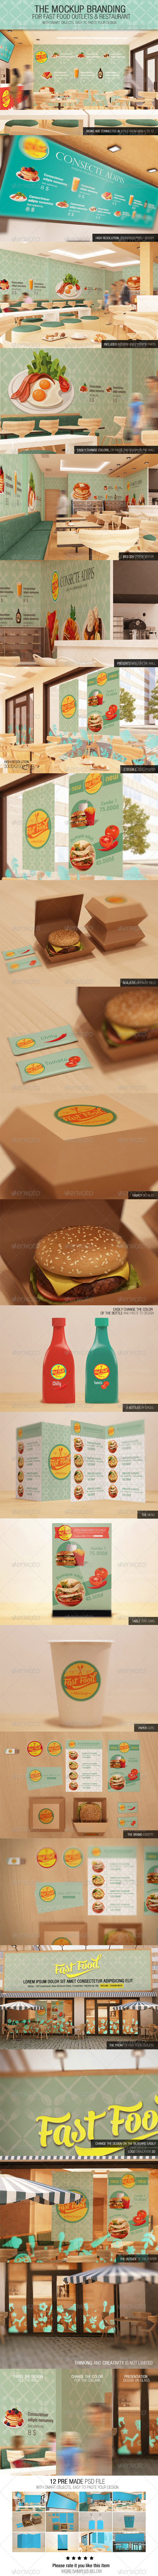 The Mockup Branding For Fast Food Outlets - Logo Product Mock-Ups